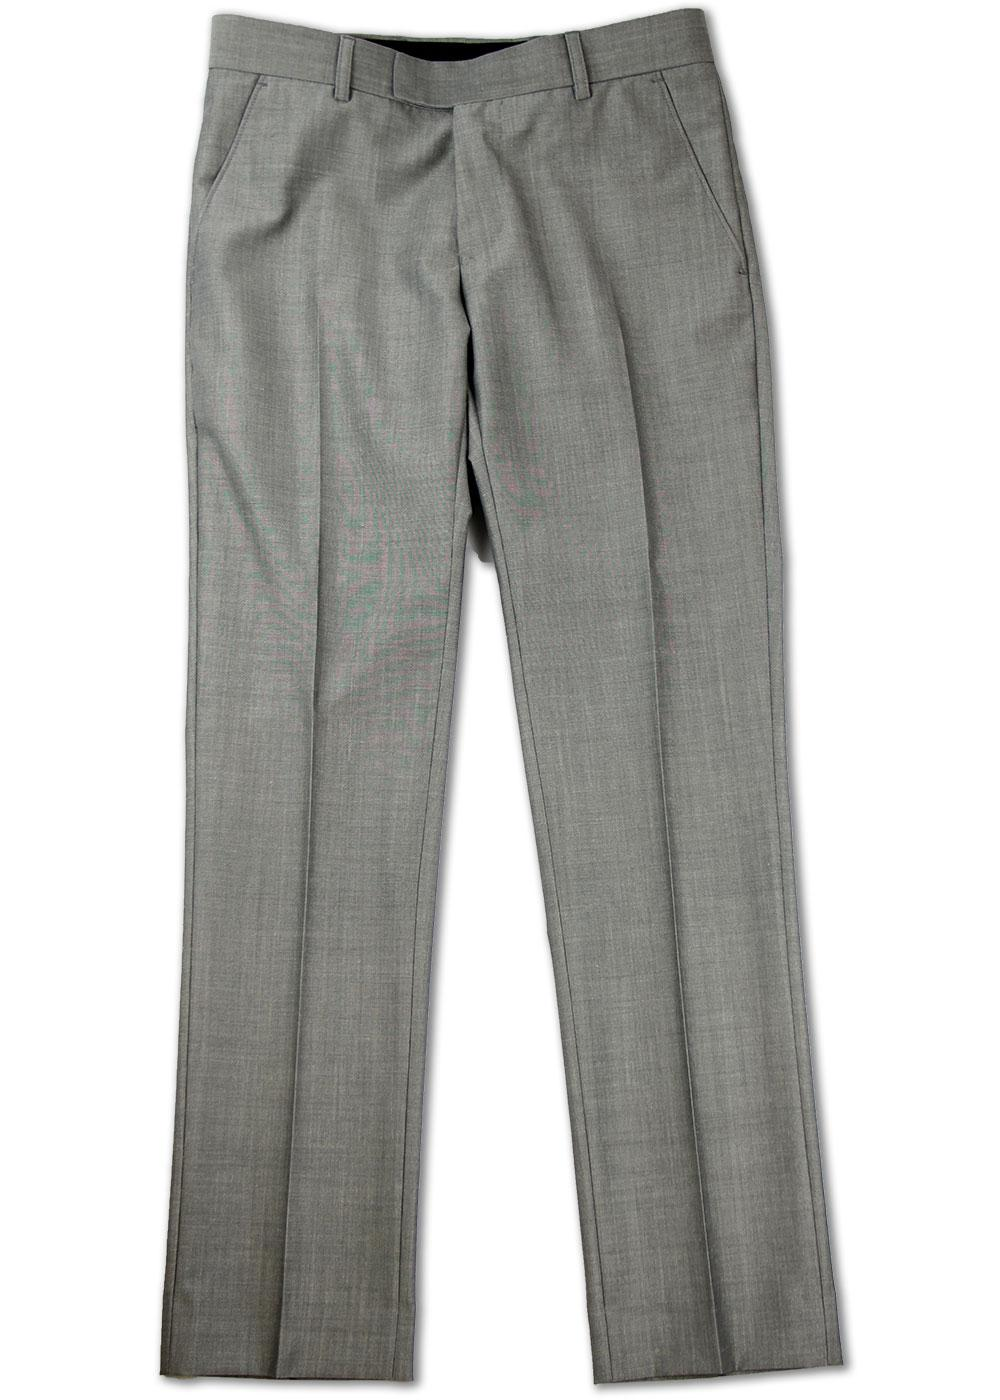 MADCAP ENGLAND Mod Silver Mohair Tonic Trousers